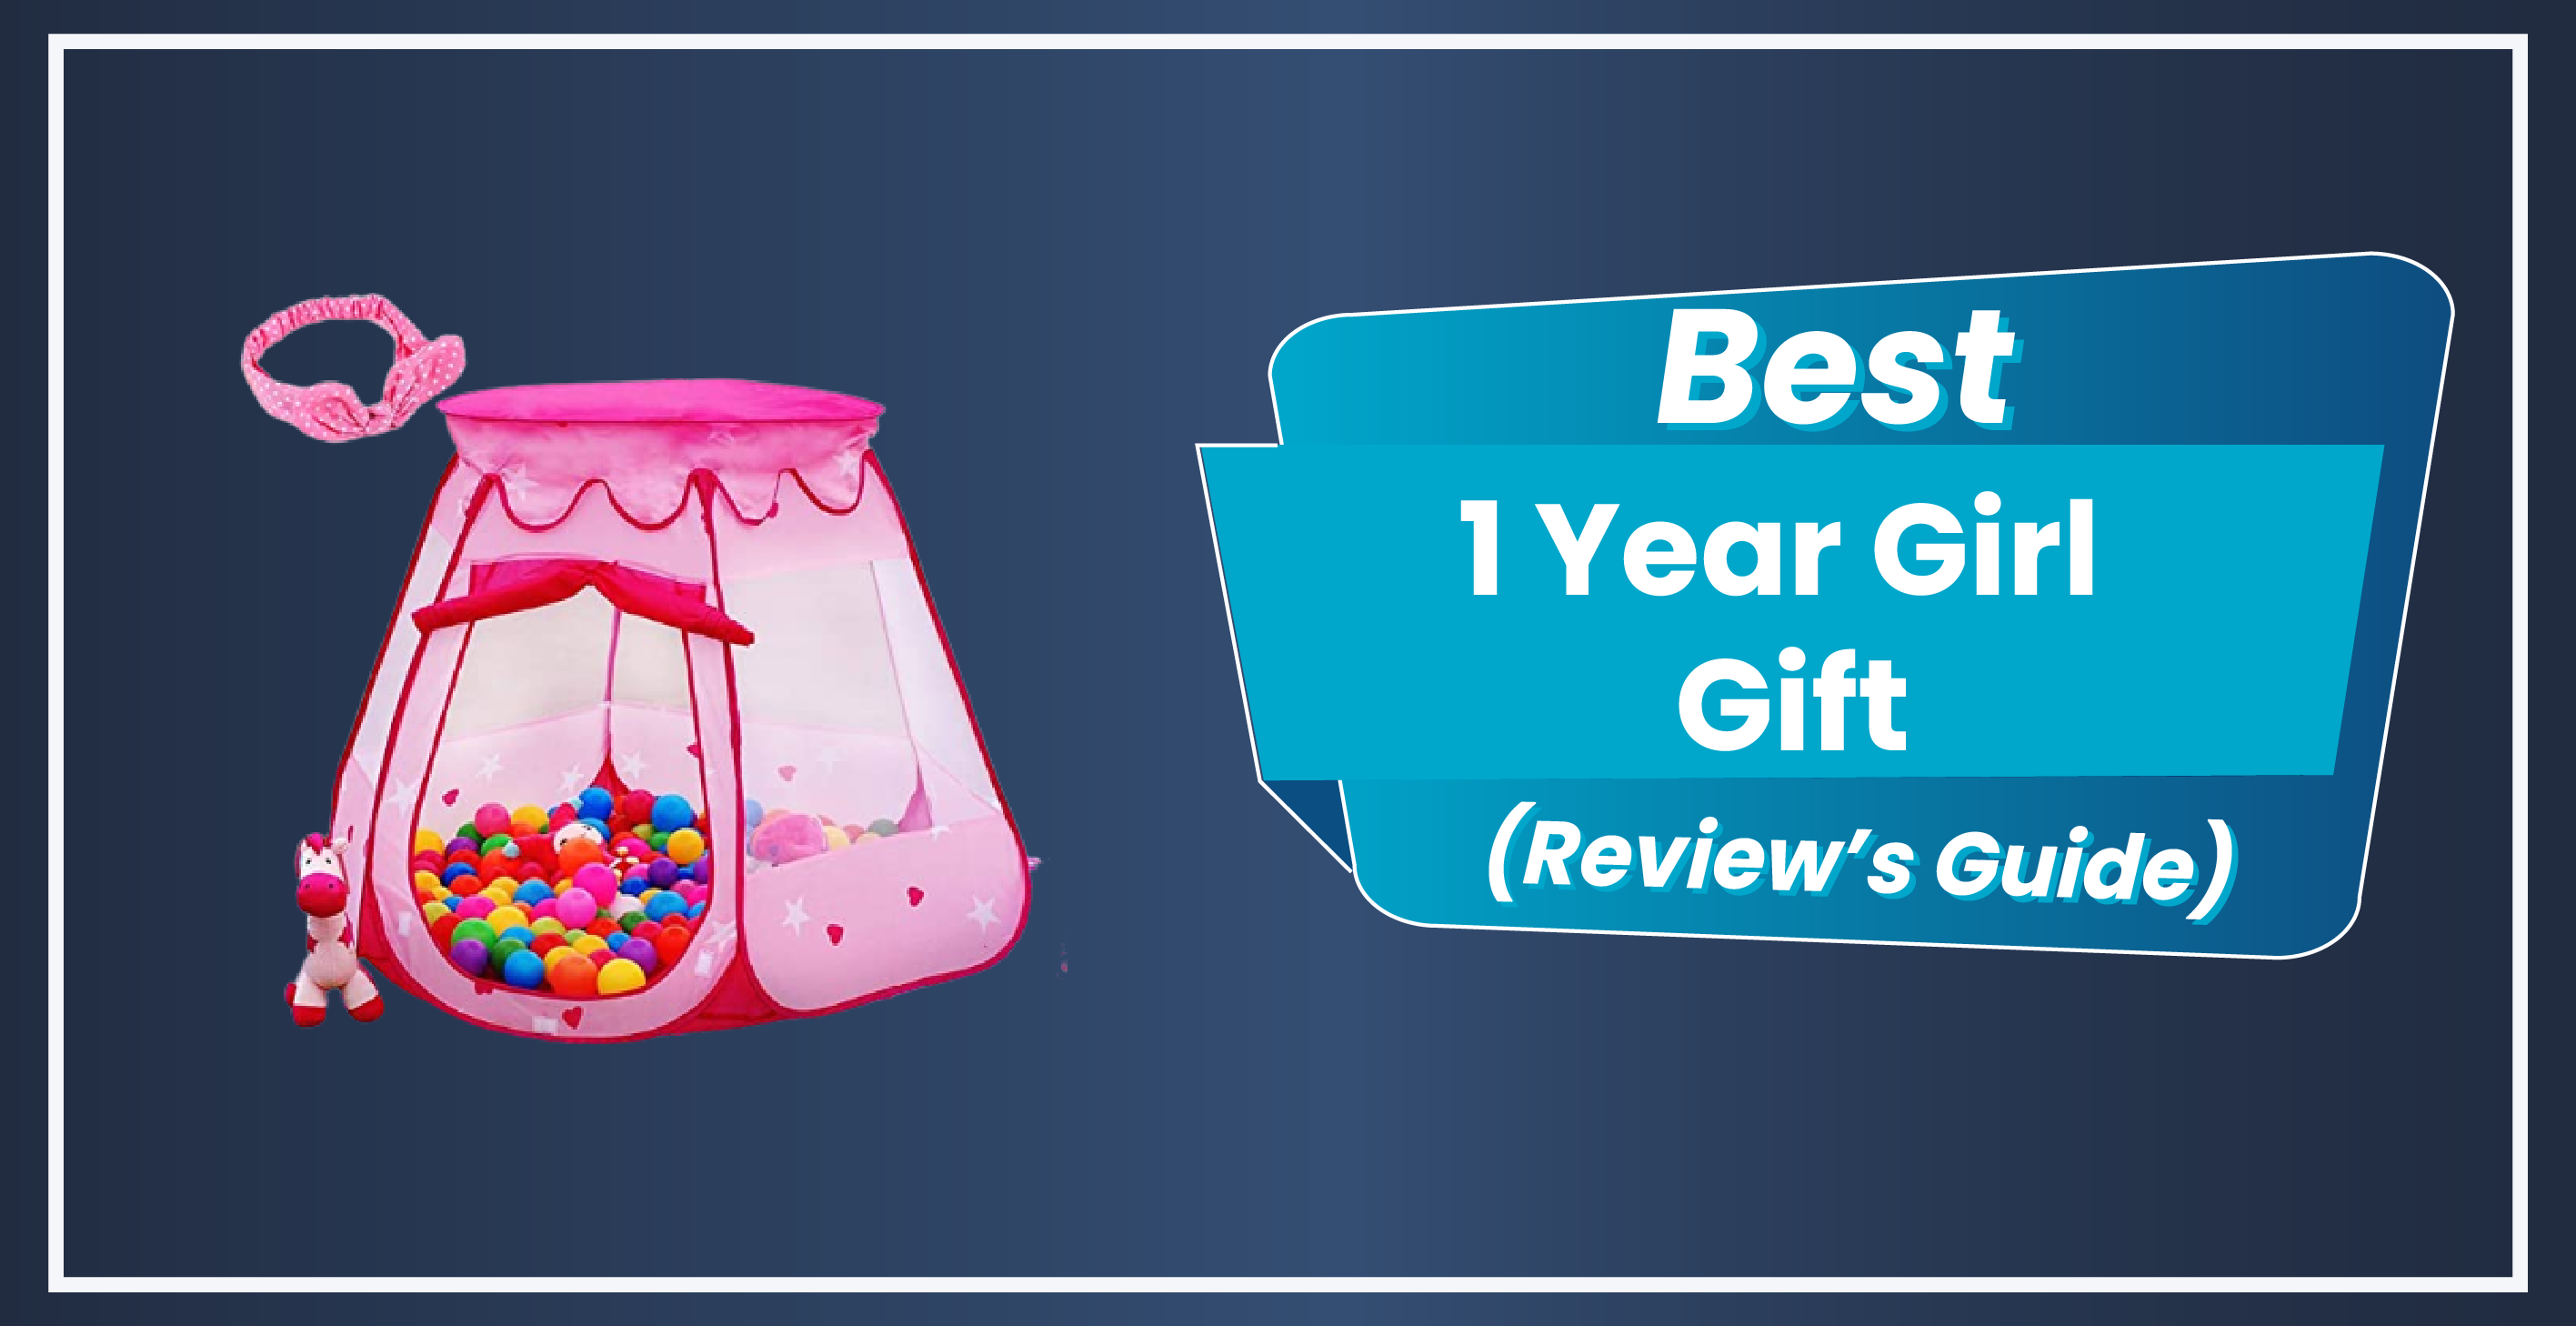 17 Best Toys and Gift Ideas For 1 Year Old Girl